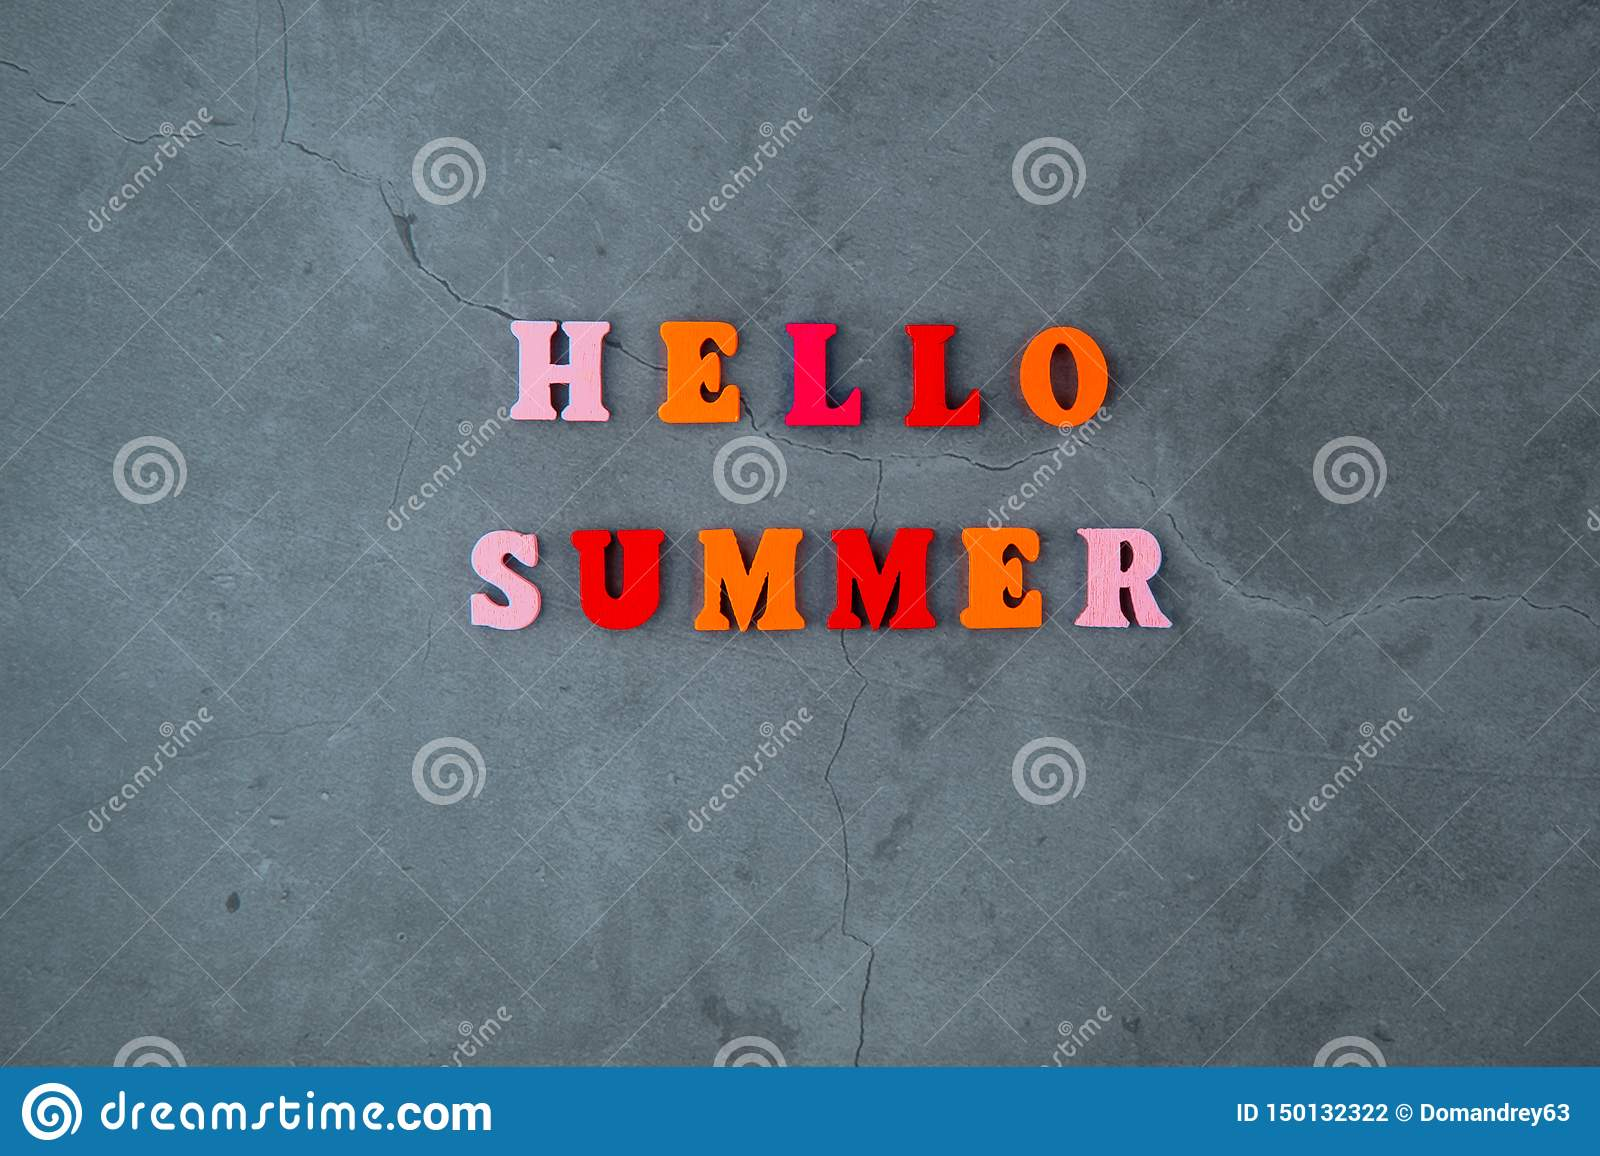 The multicolored hello summer word is made of wooden letters on a grey plastered wall background